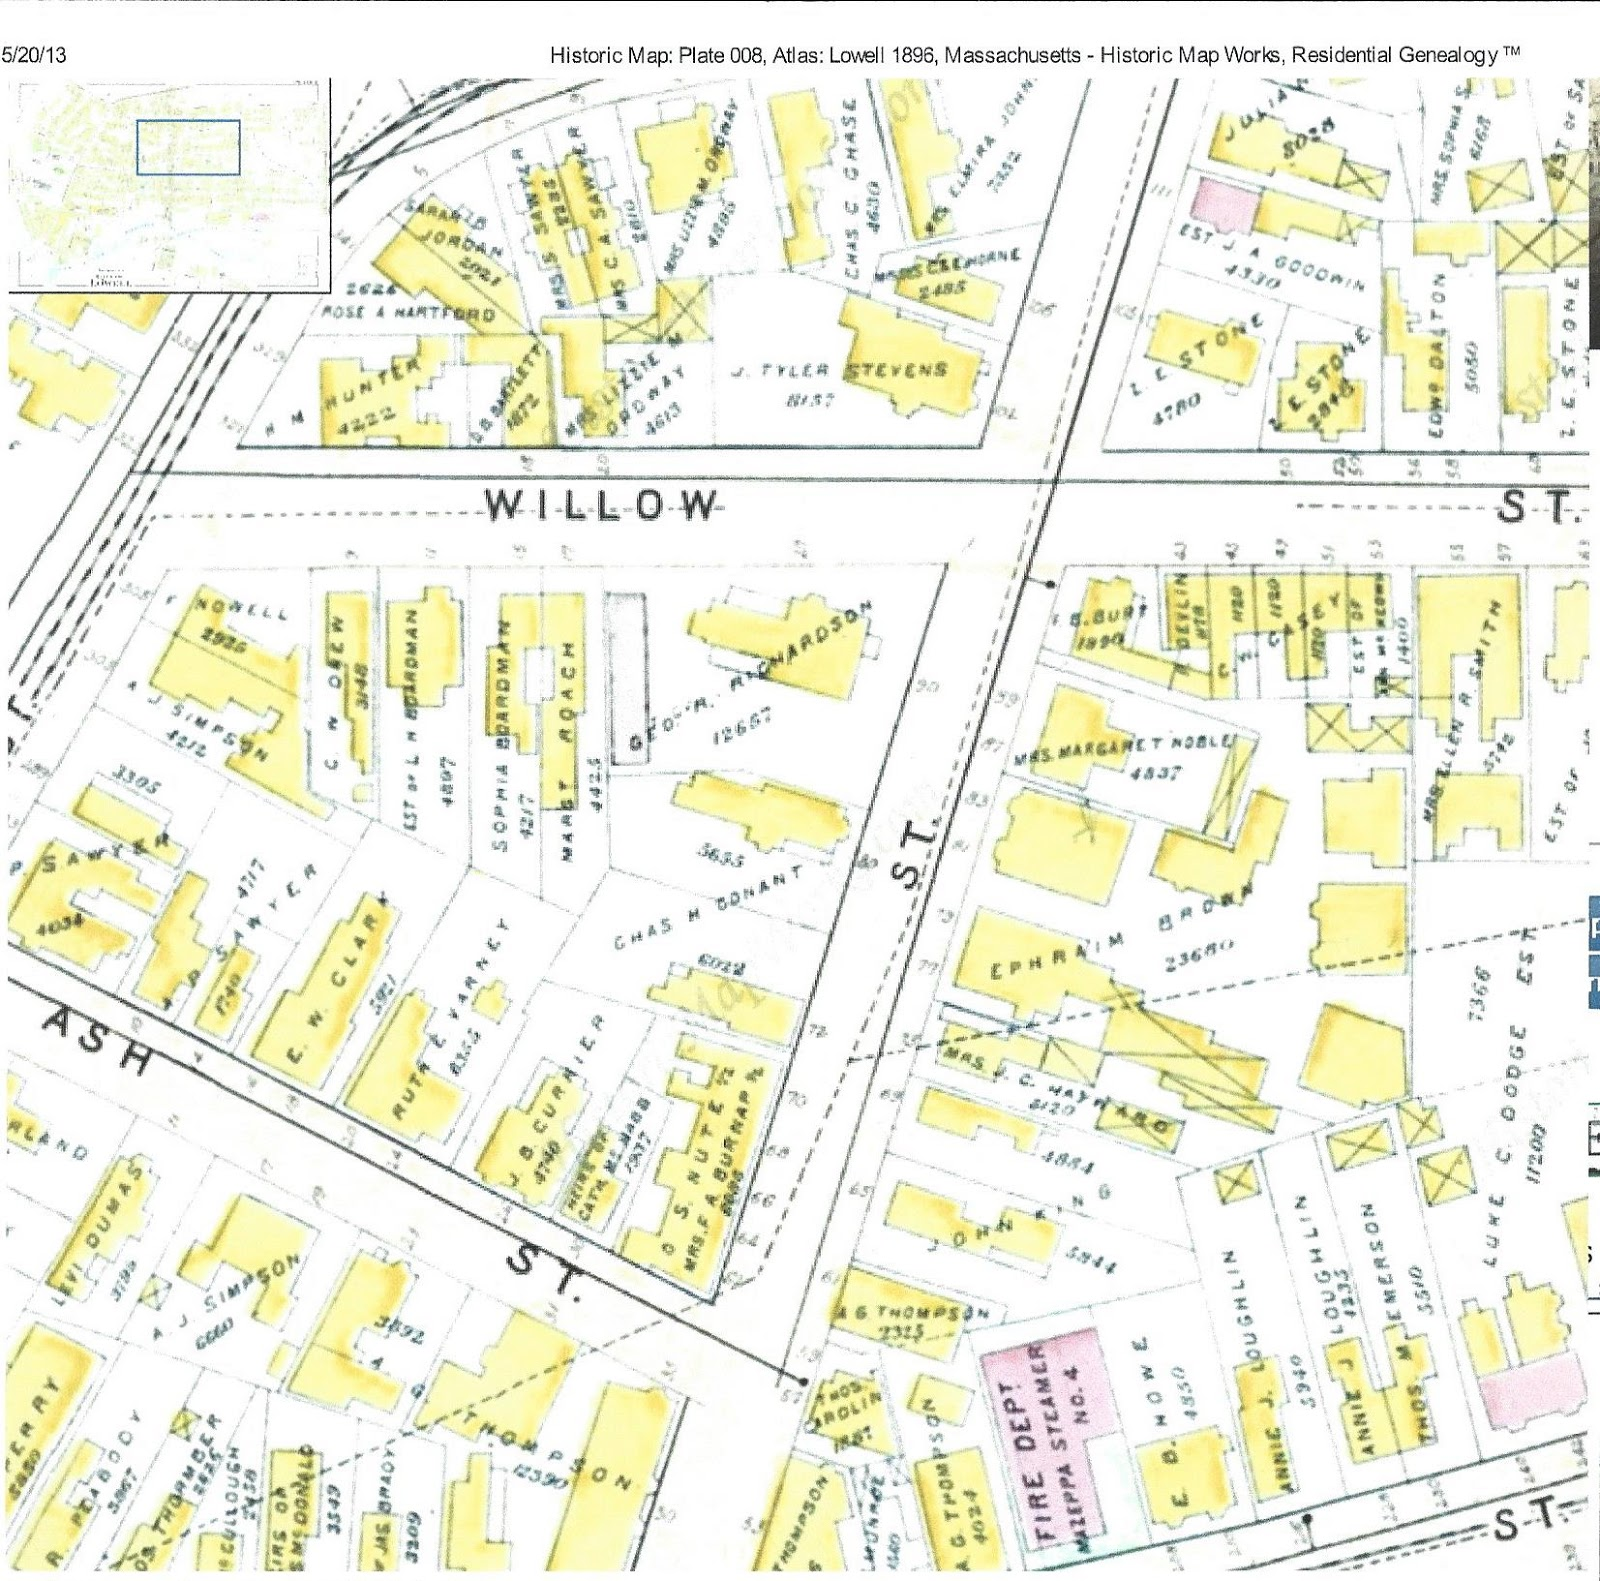 the notation 4 rear on all of the willow street addresses is consistently listed in the directories from 1875 to 1894 even with lowell s house